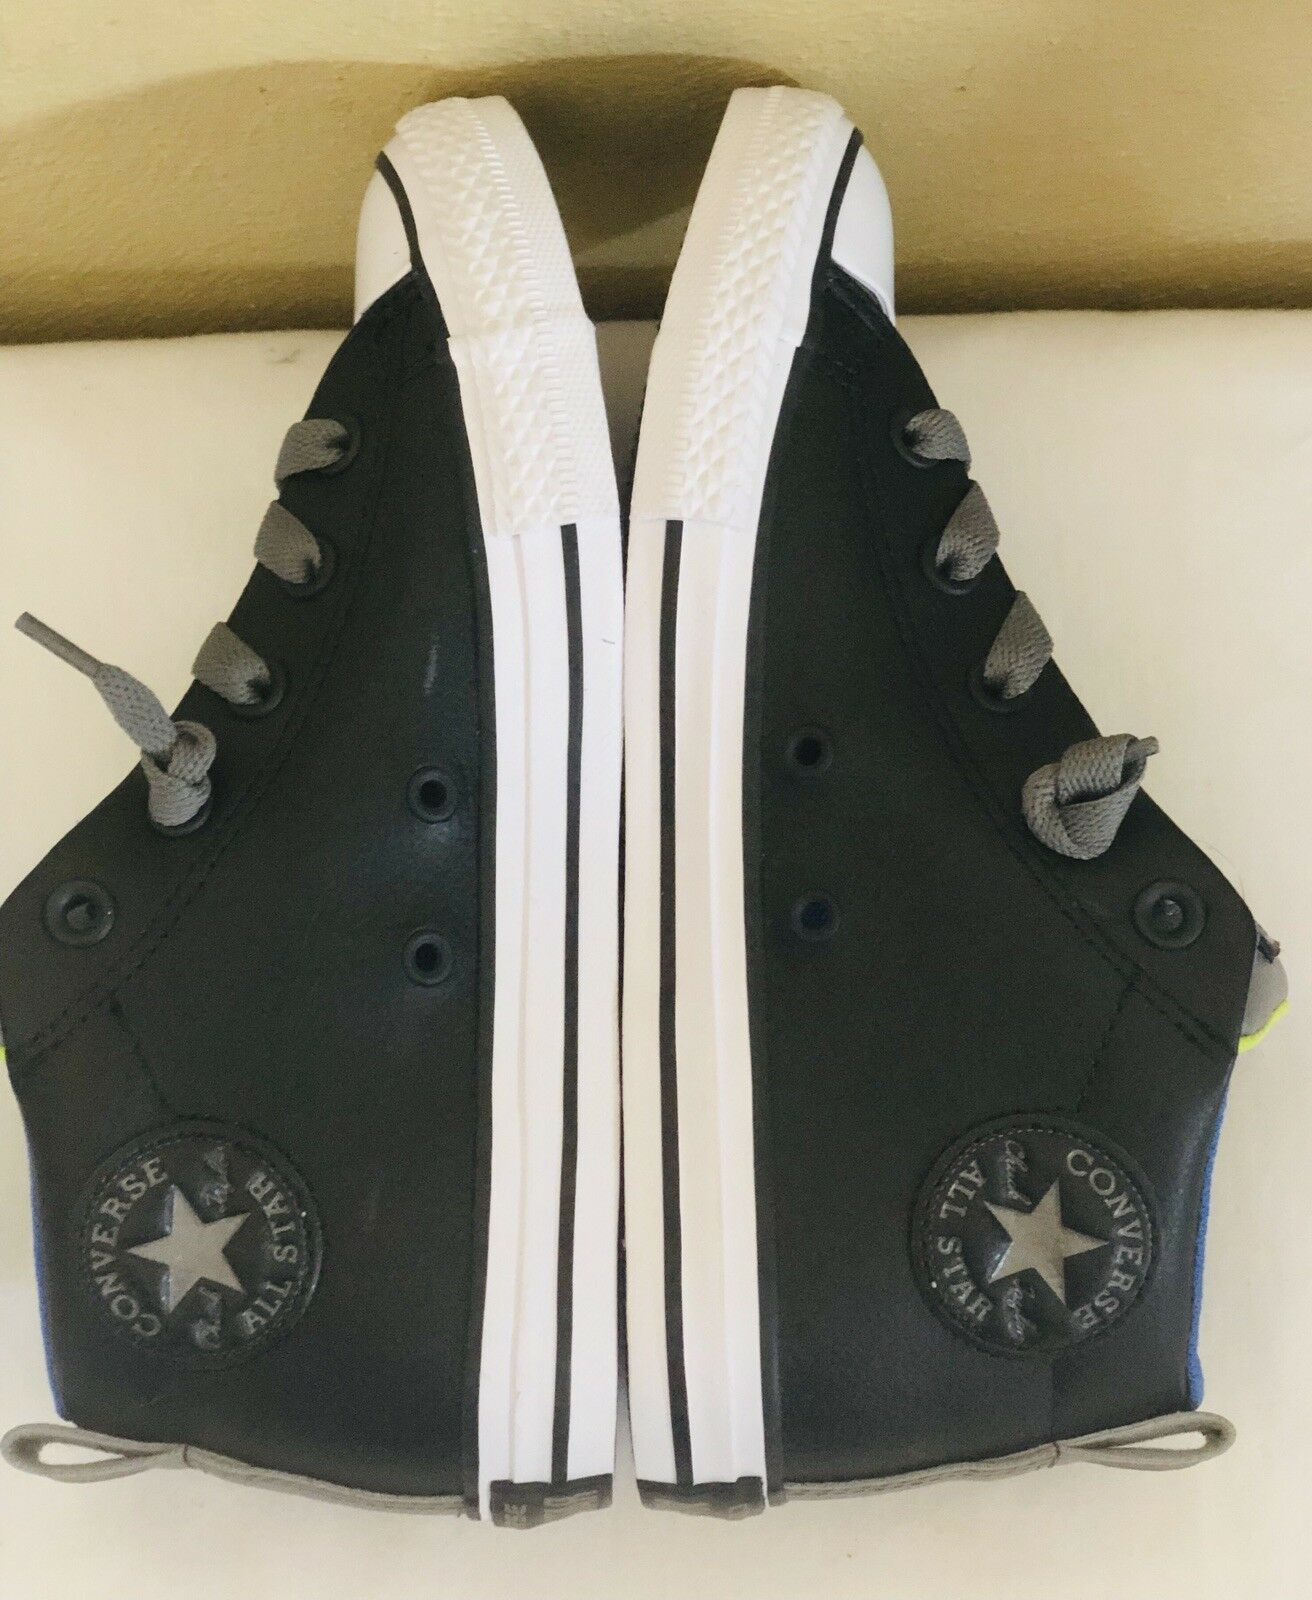 New Converse All-Star Black/Gray Leather Mid Juniir Sneakers Size 3